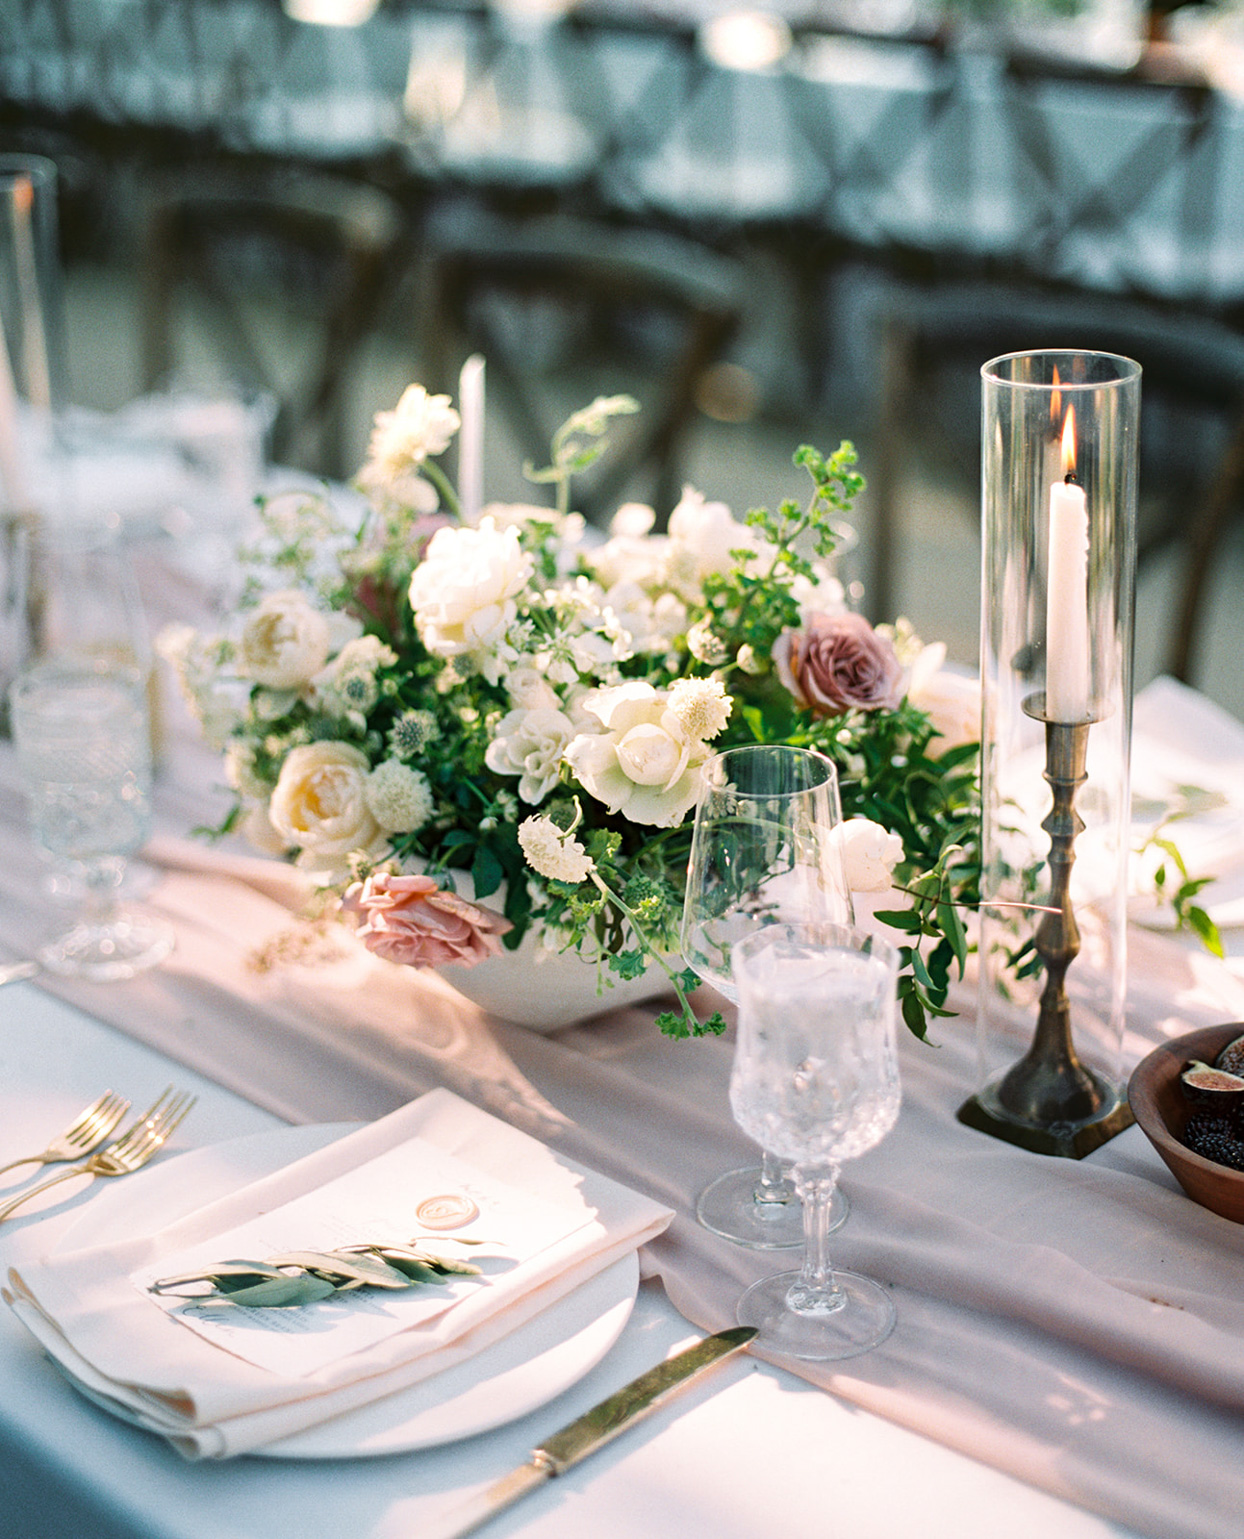 pastel pink floral centerpieces on table